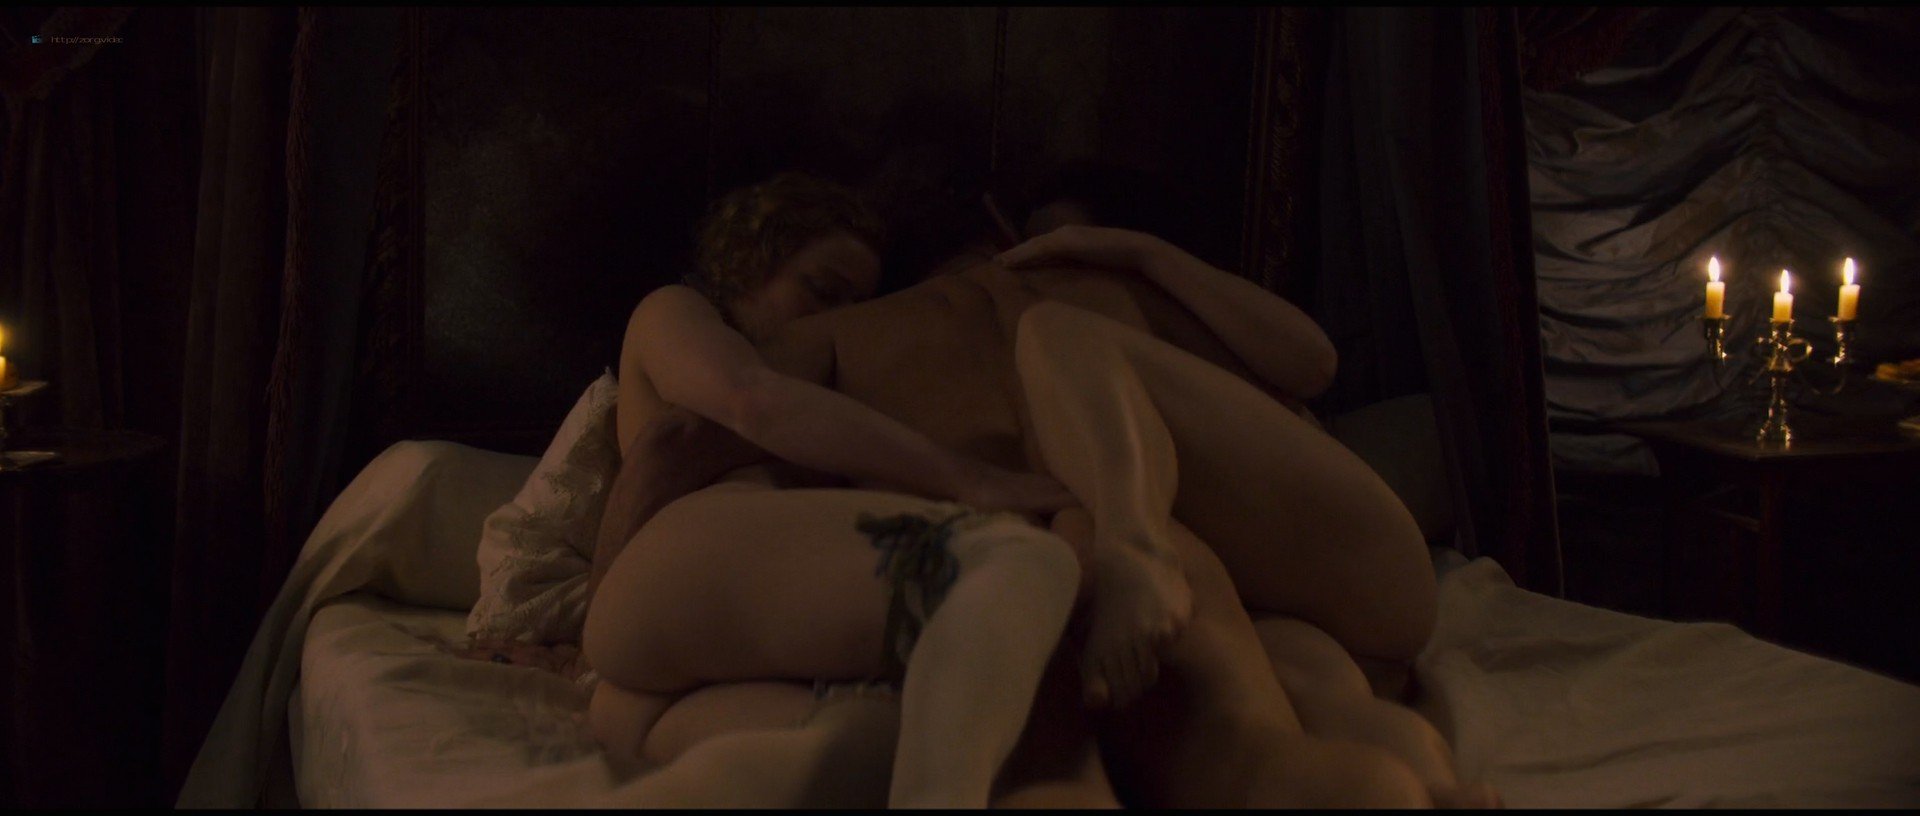 Stacy Martin nude butt and topless - Casanova, Last Love (FR-2019) HD 1080p Web (15)